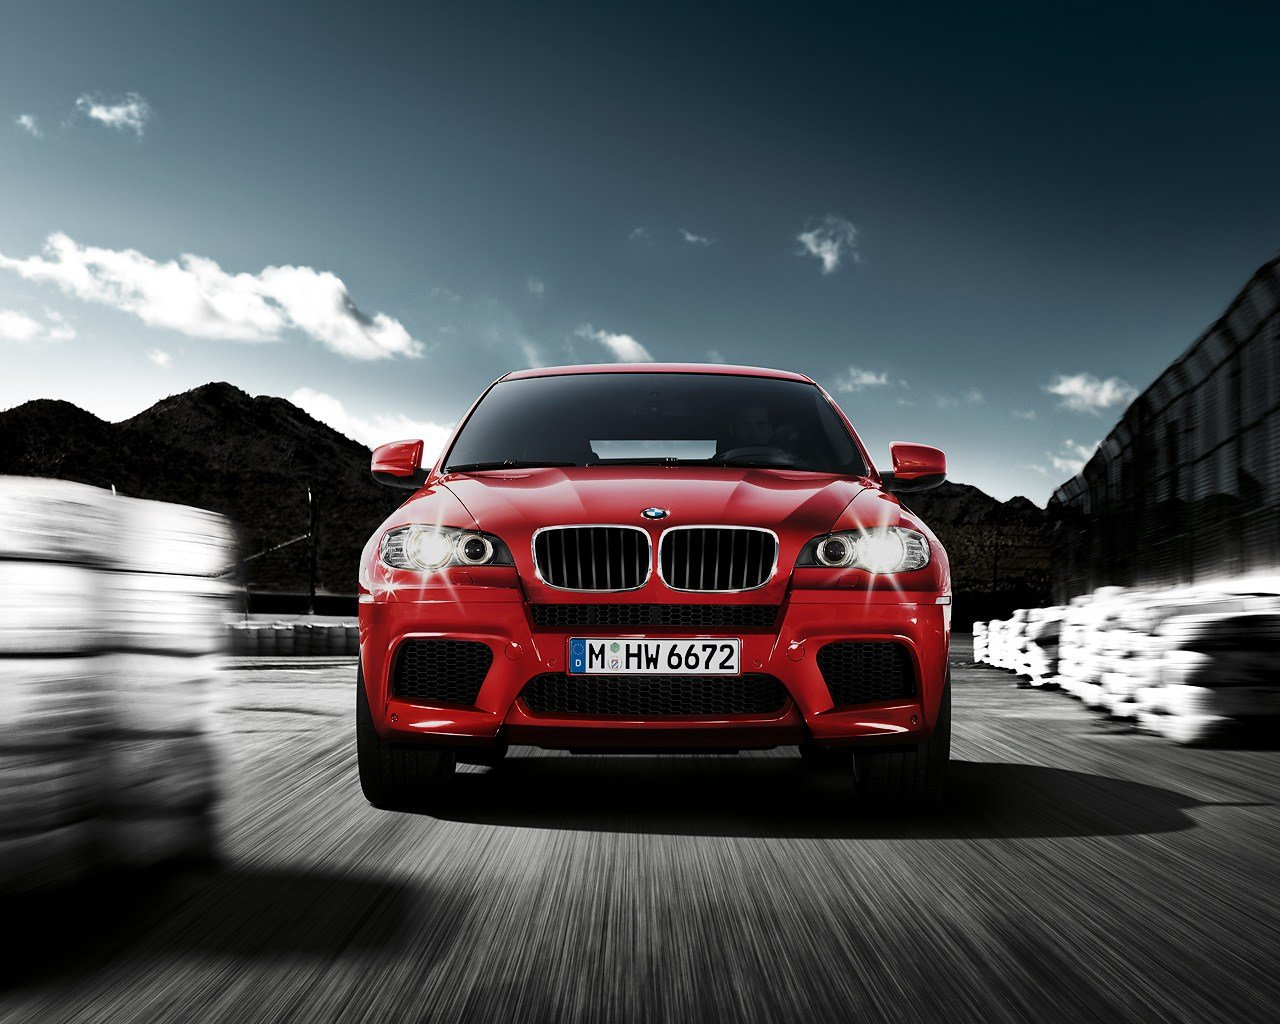 Latest Racetrack Review Bmwblog Meets Godzilla Free Download